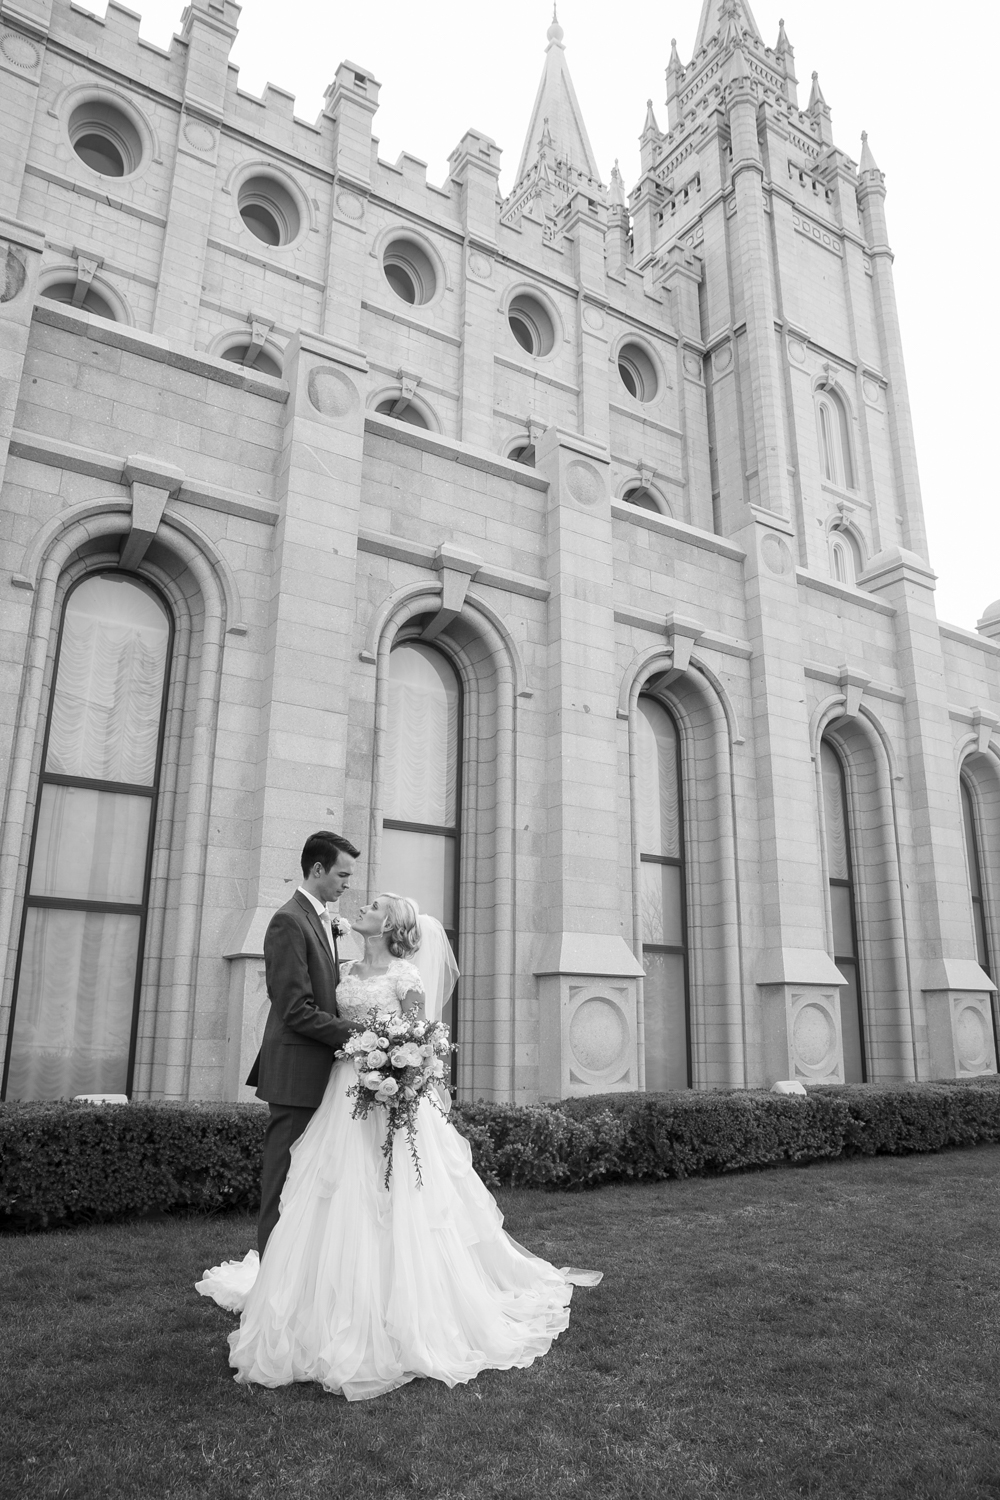 salt-lake-city-lds-temple-wedding-021.jpg